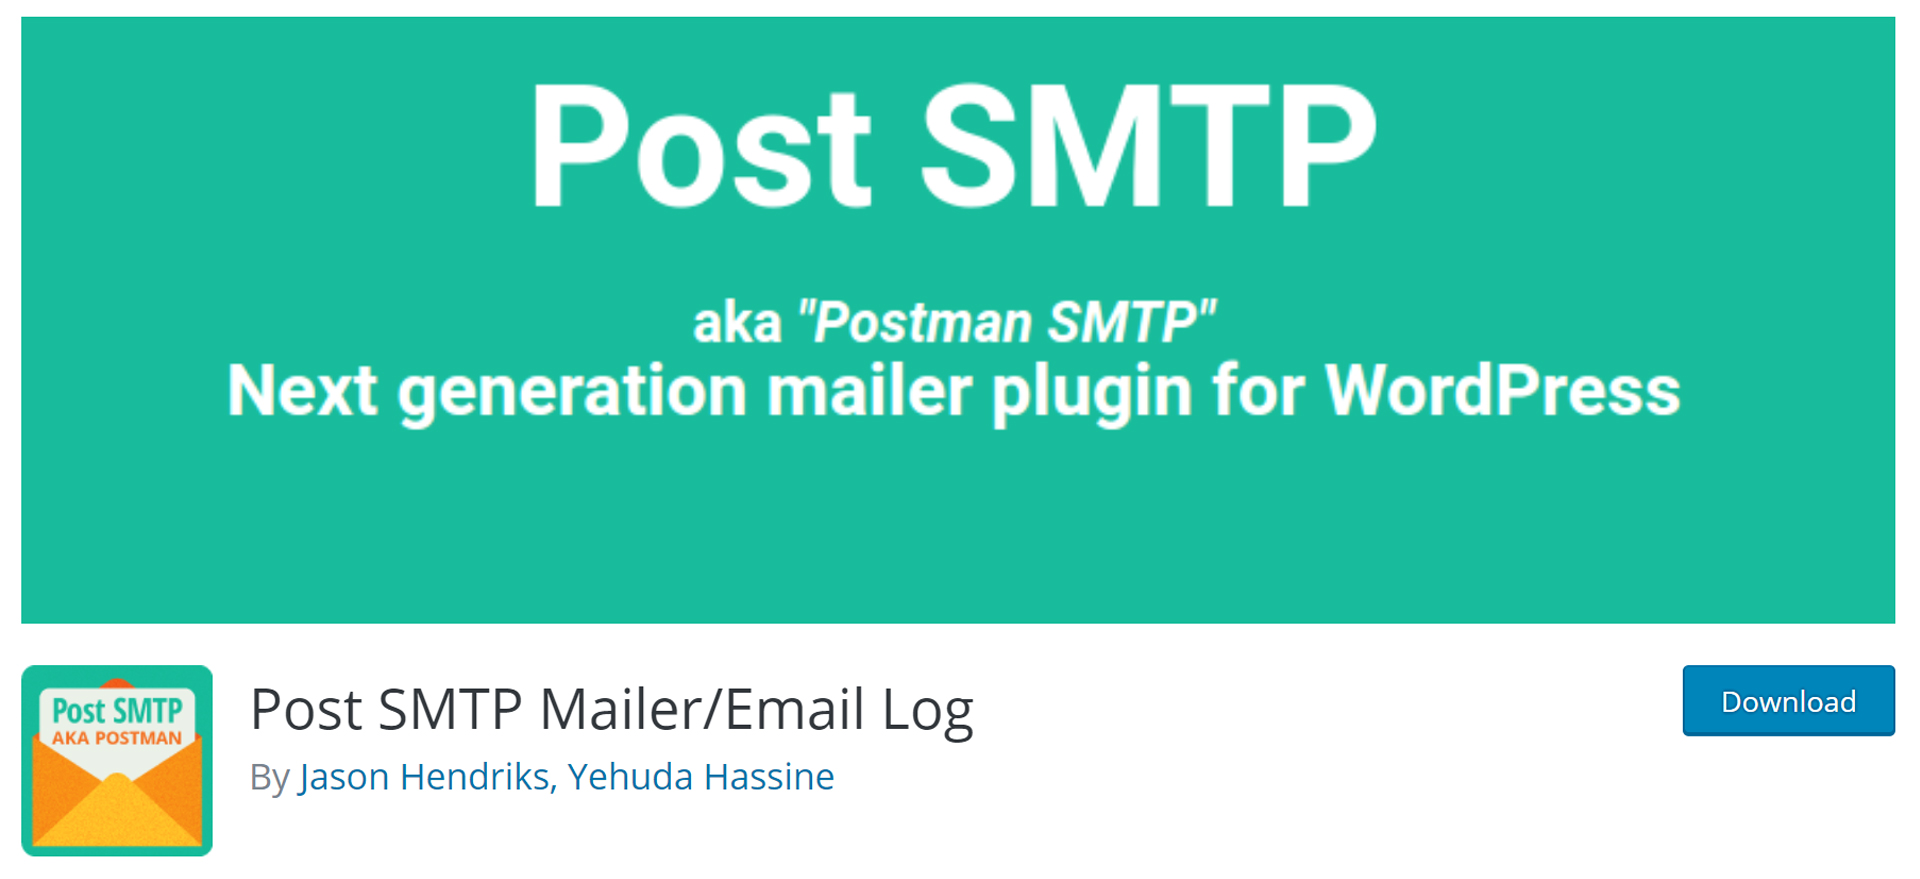 Post SMTP Mailer/Email Log